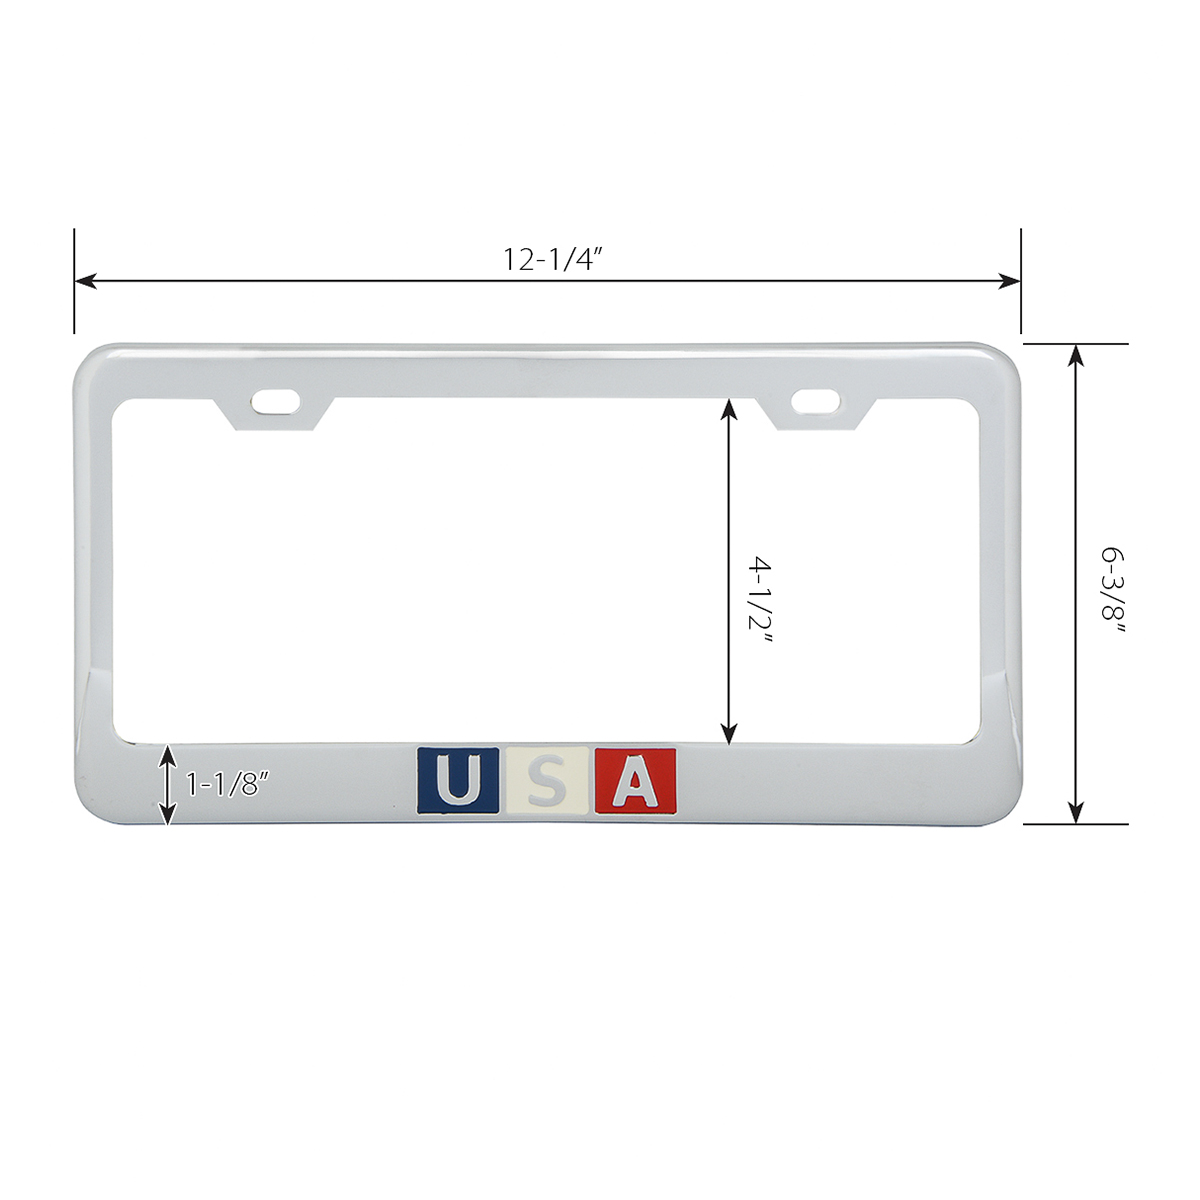 Chrome Plated Steel USA License Plate Frame - Measurements